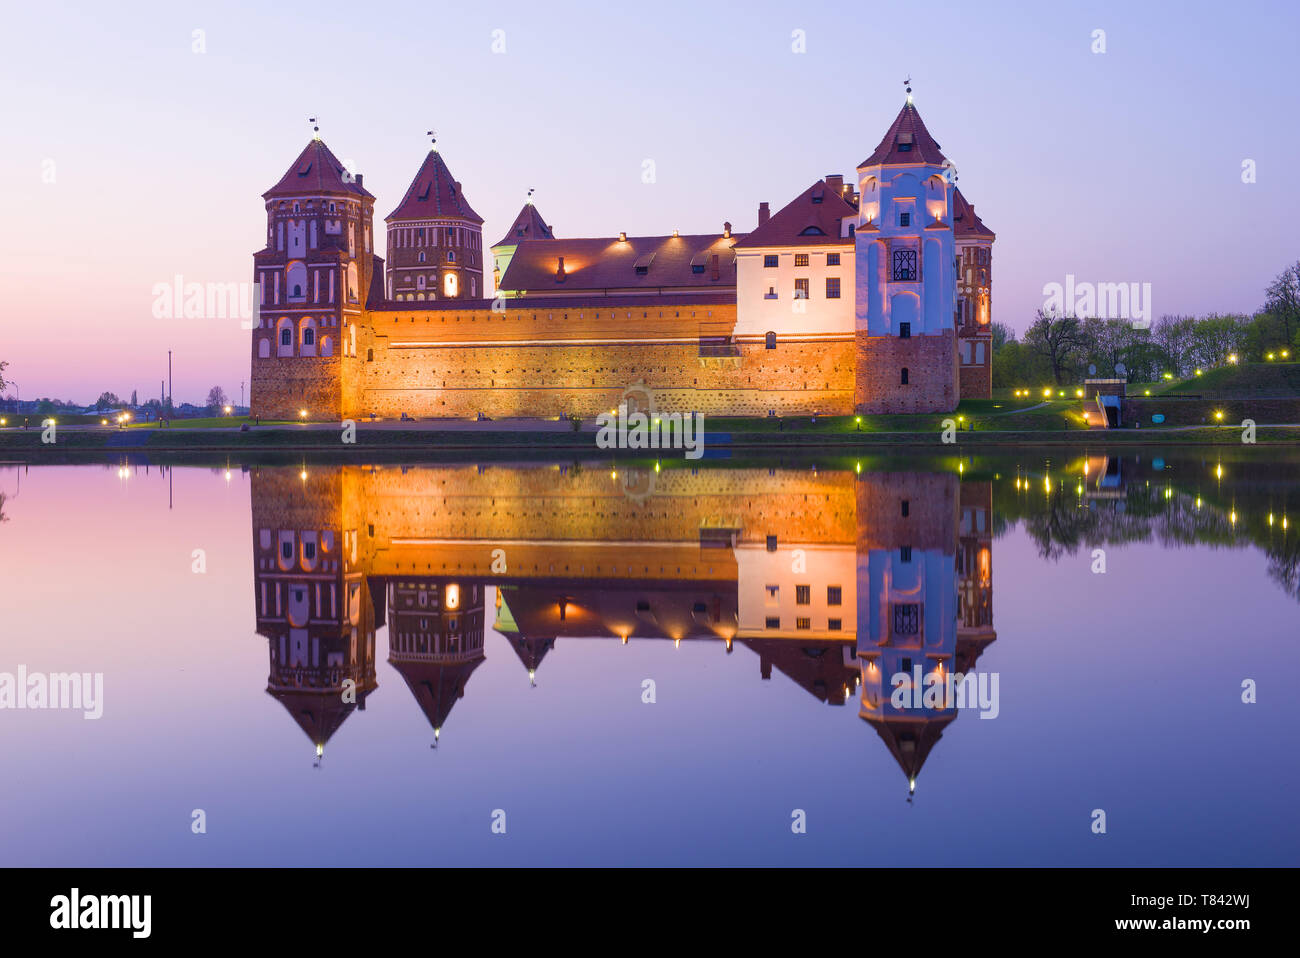 Mir Castle in the April twilight. Belarus - Stock Image